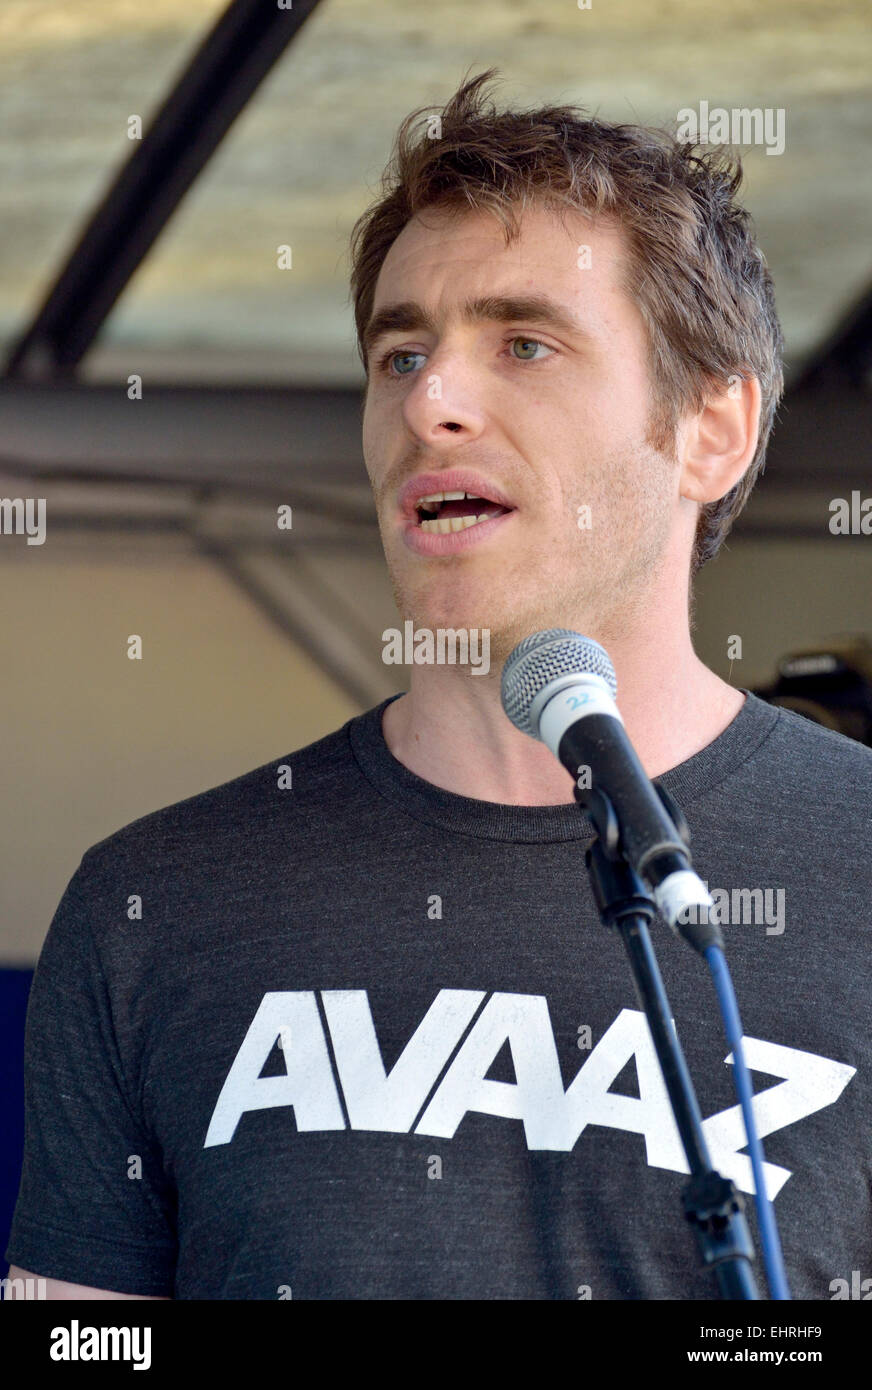 Bert Wander, Media Campaigner (London) for AVAAZ.org - online activist organisation -  speaking in London 2015 Stock Photo